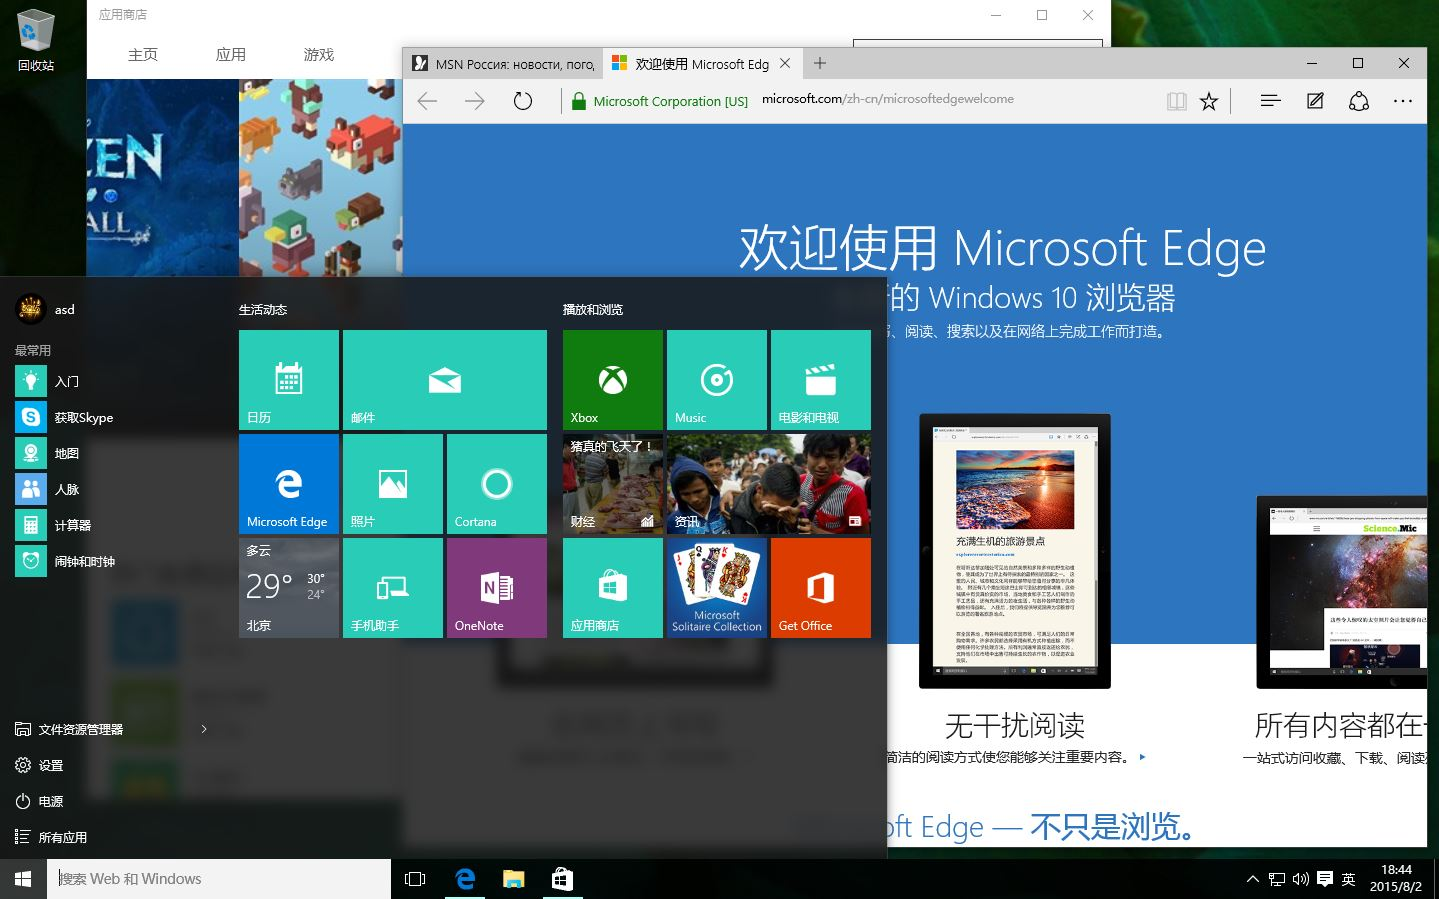 Windows 10 Pro 10240 Tablet PC1